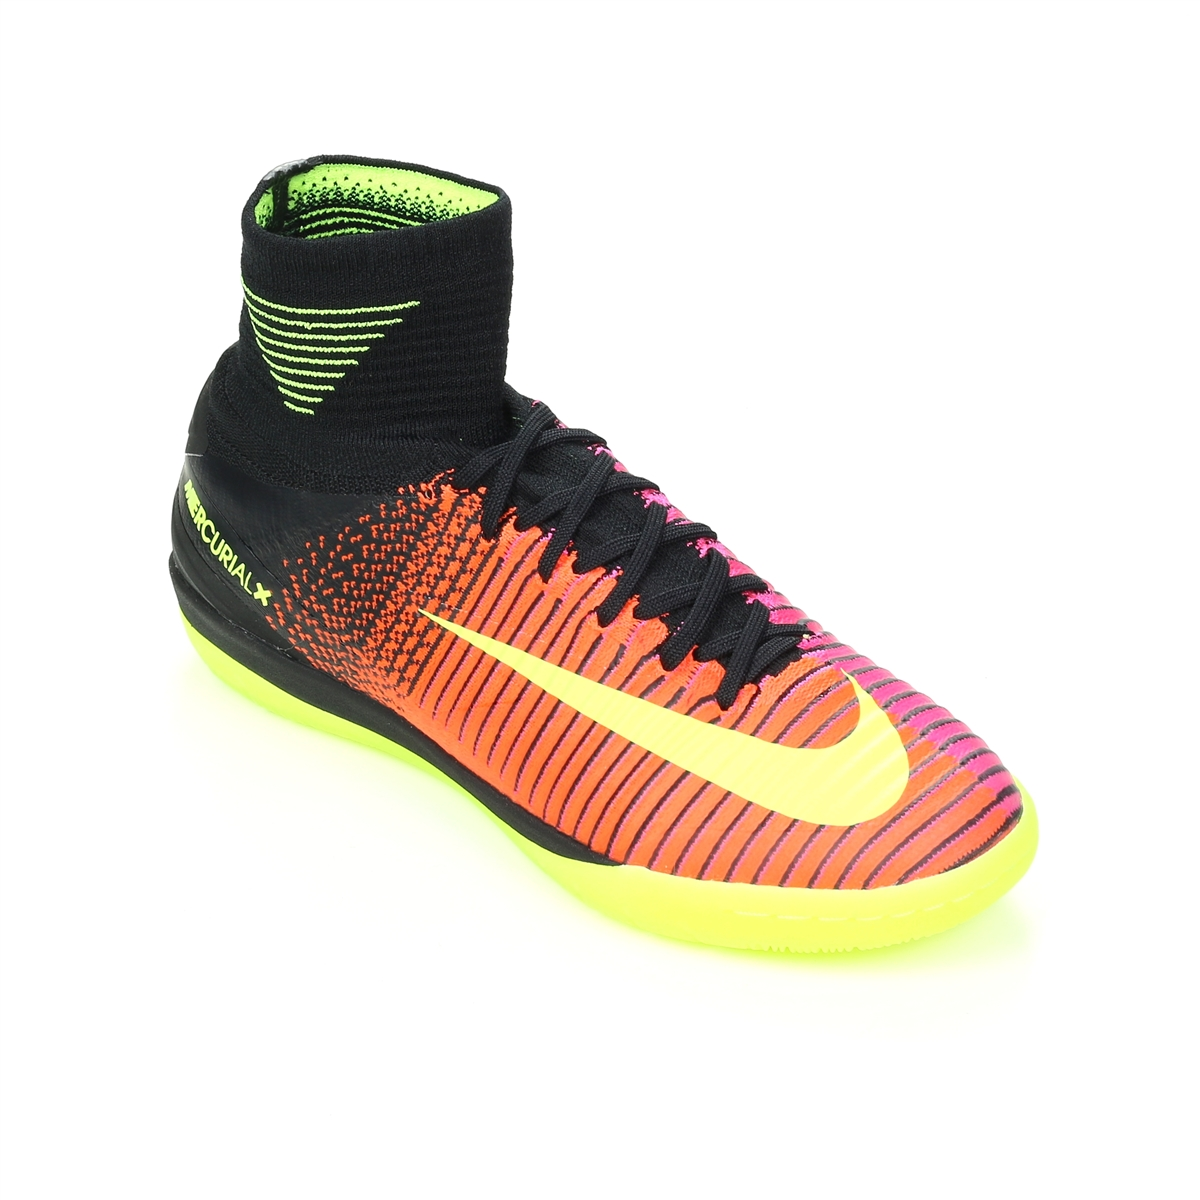 bde237b83767 Nike MercurialX Proximo II Street IC Indoor Soccer Shoes (Total Crimson  Volt Black Pink ...